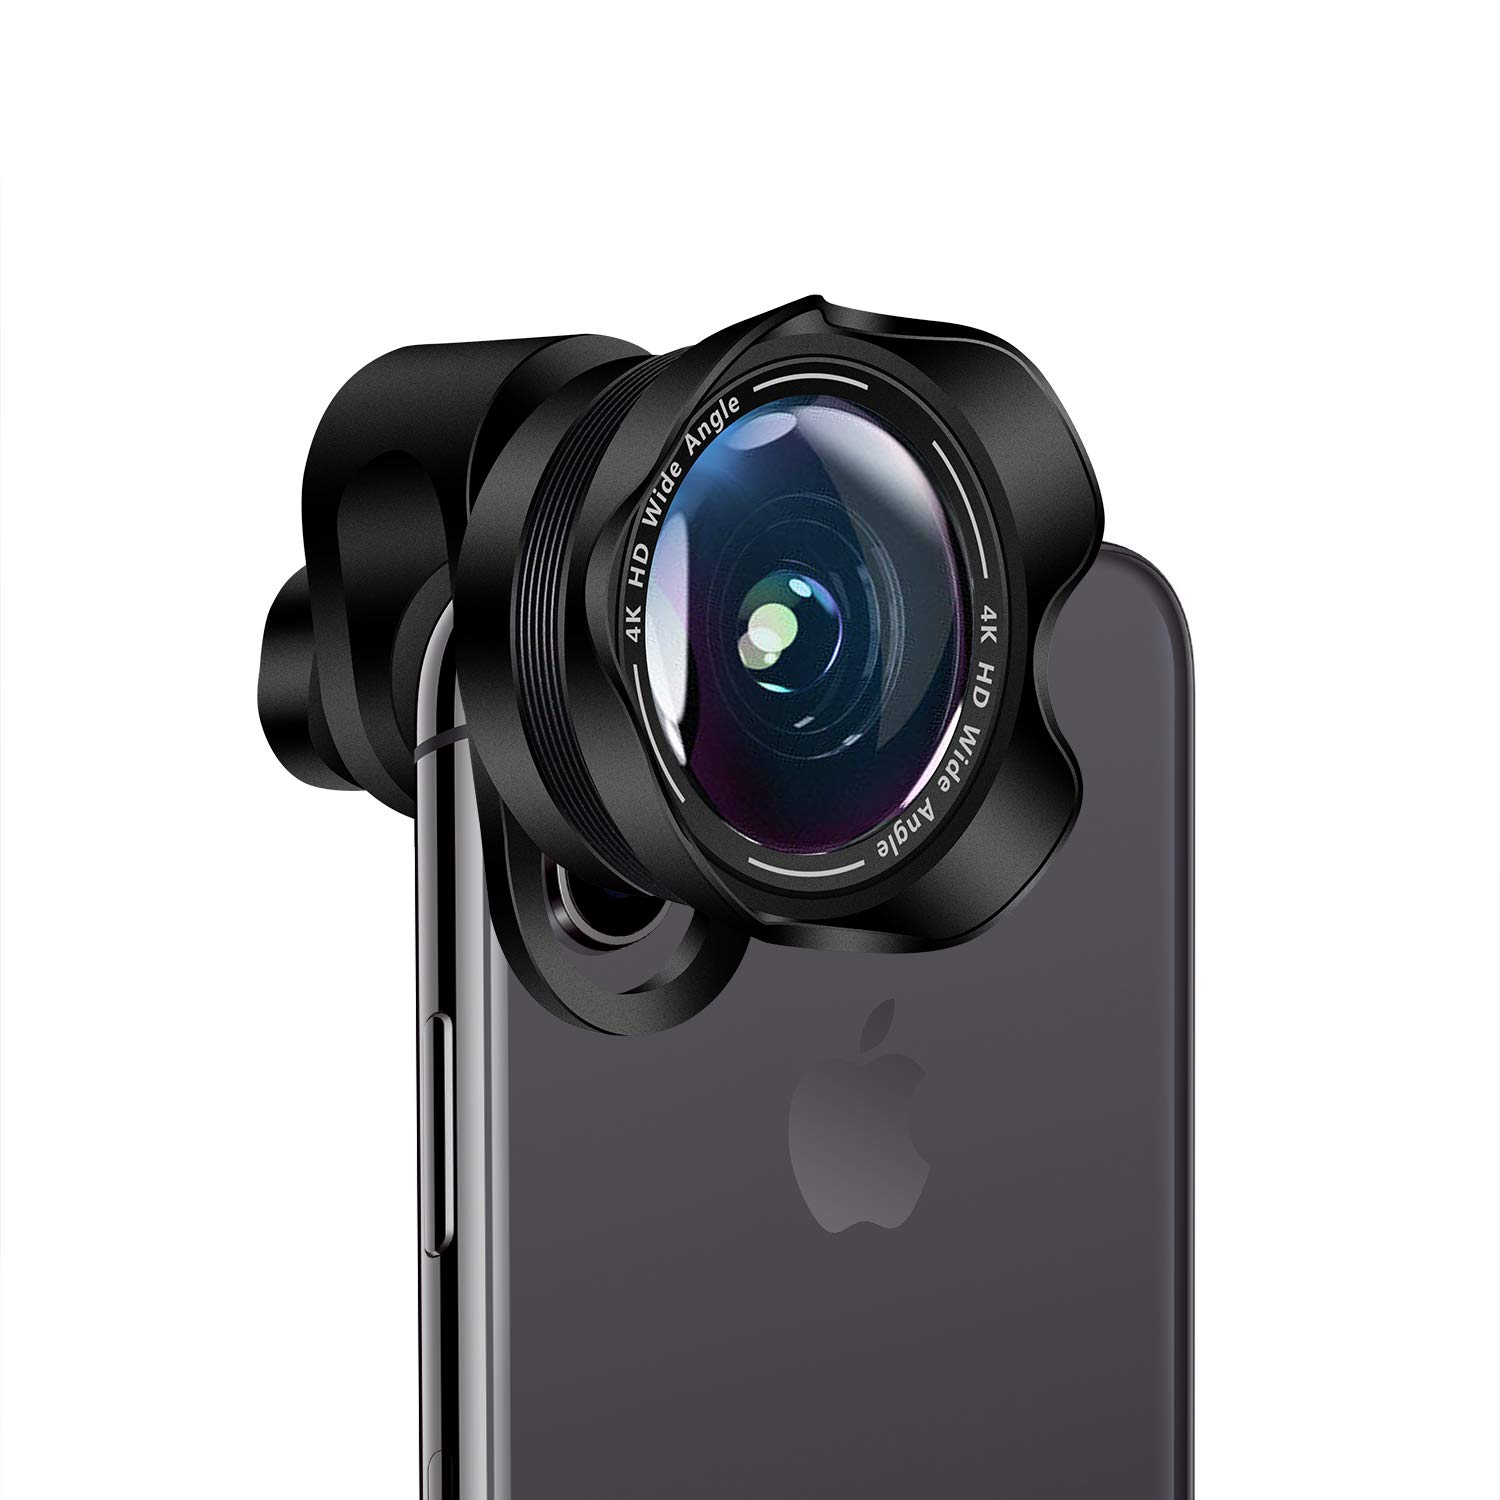 Cell Phone Camera Lens,TODI 4K HD 2 in 1 Aspherical Wide Angle Lens, Super Macro Lens,Clip-On Cell Phone Camera Lenses Compatible iPhone,Samsung, Most Andriod Phones (No Distortion)